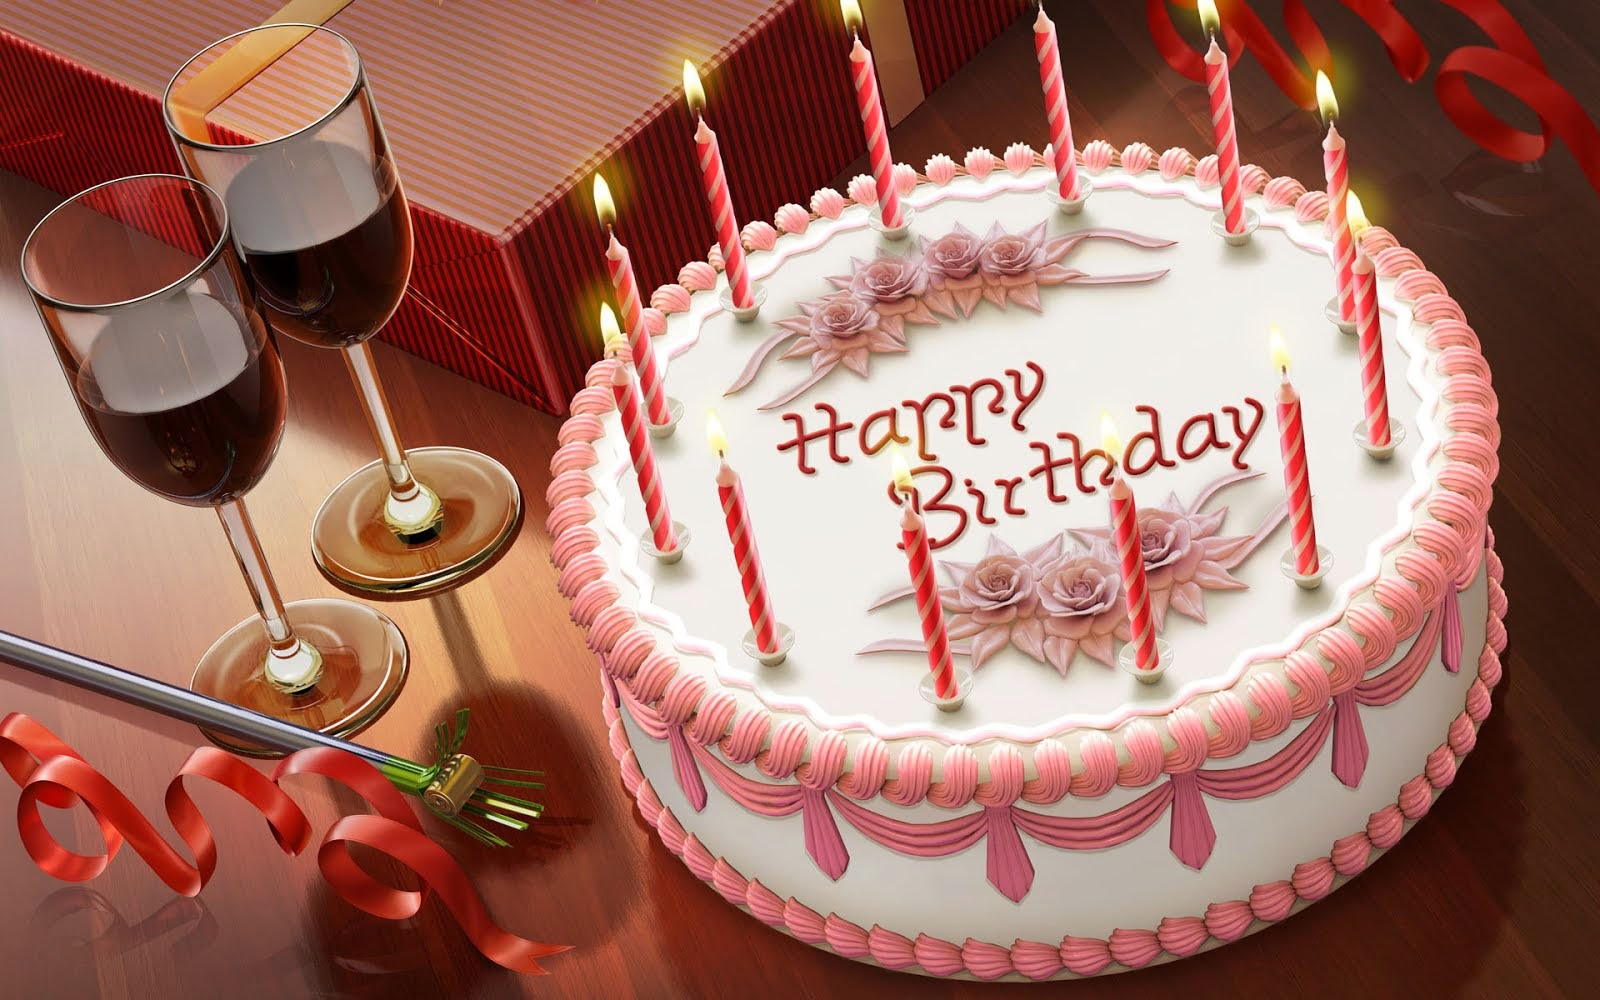 Happy Birthday Wallpapers Hd Wallpapers Download Free